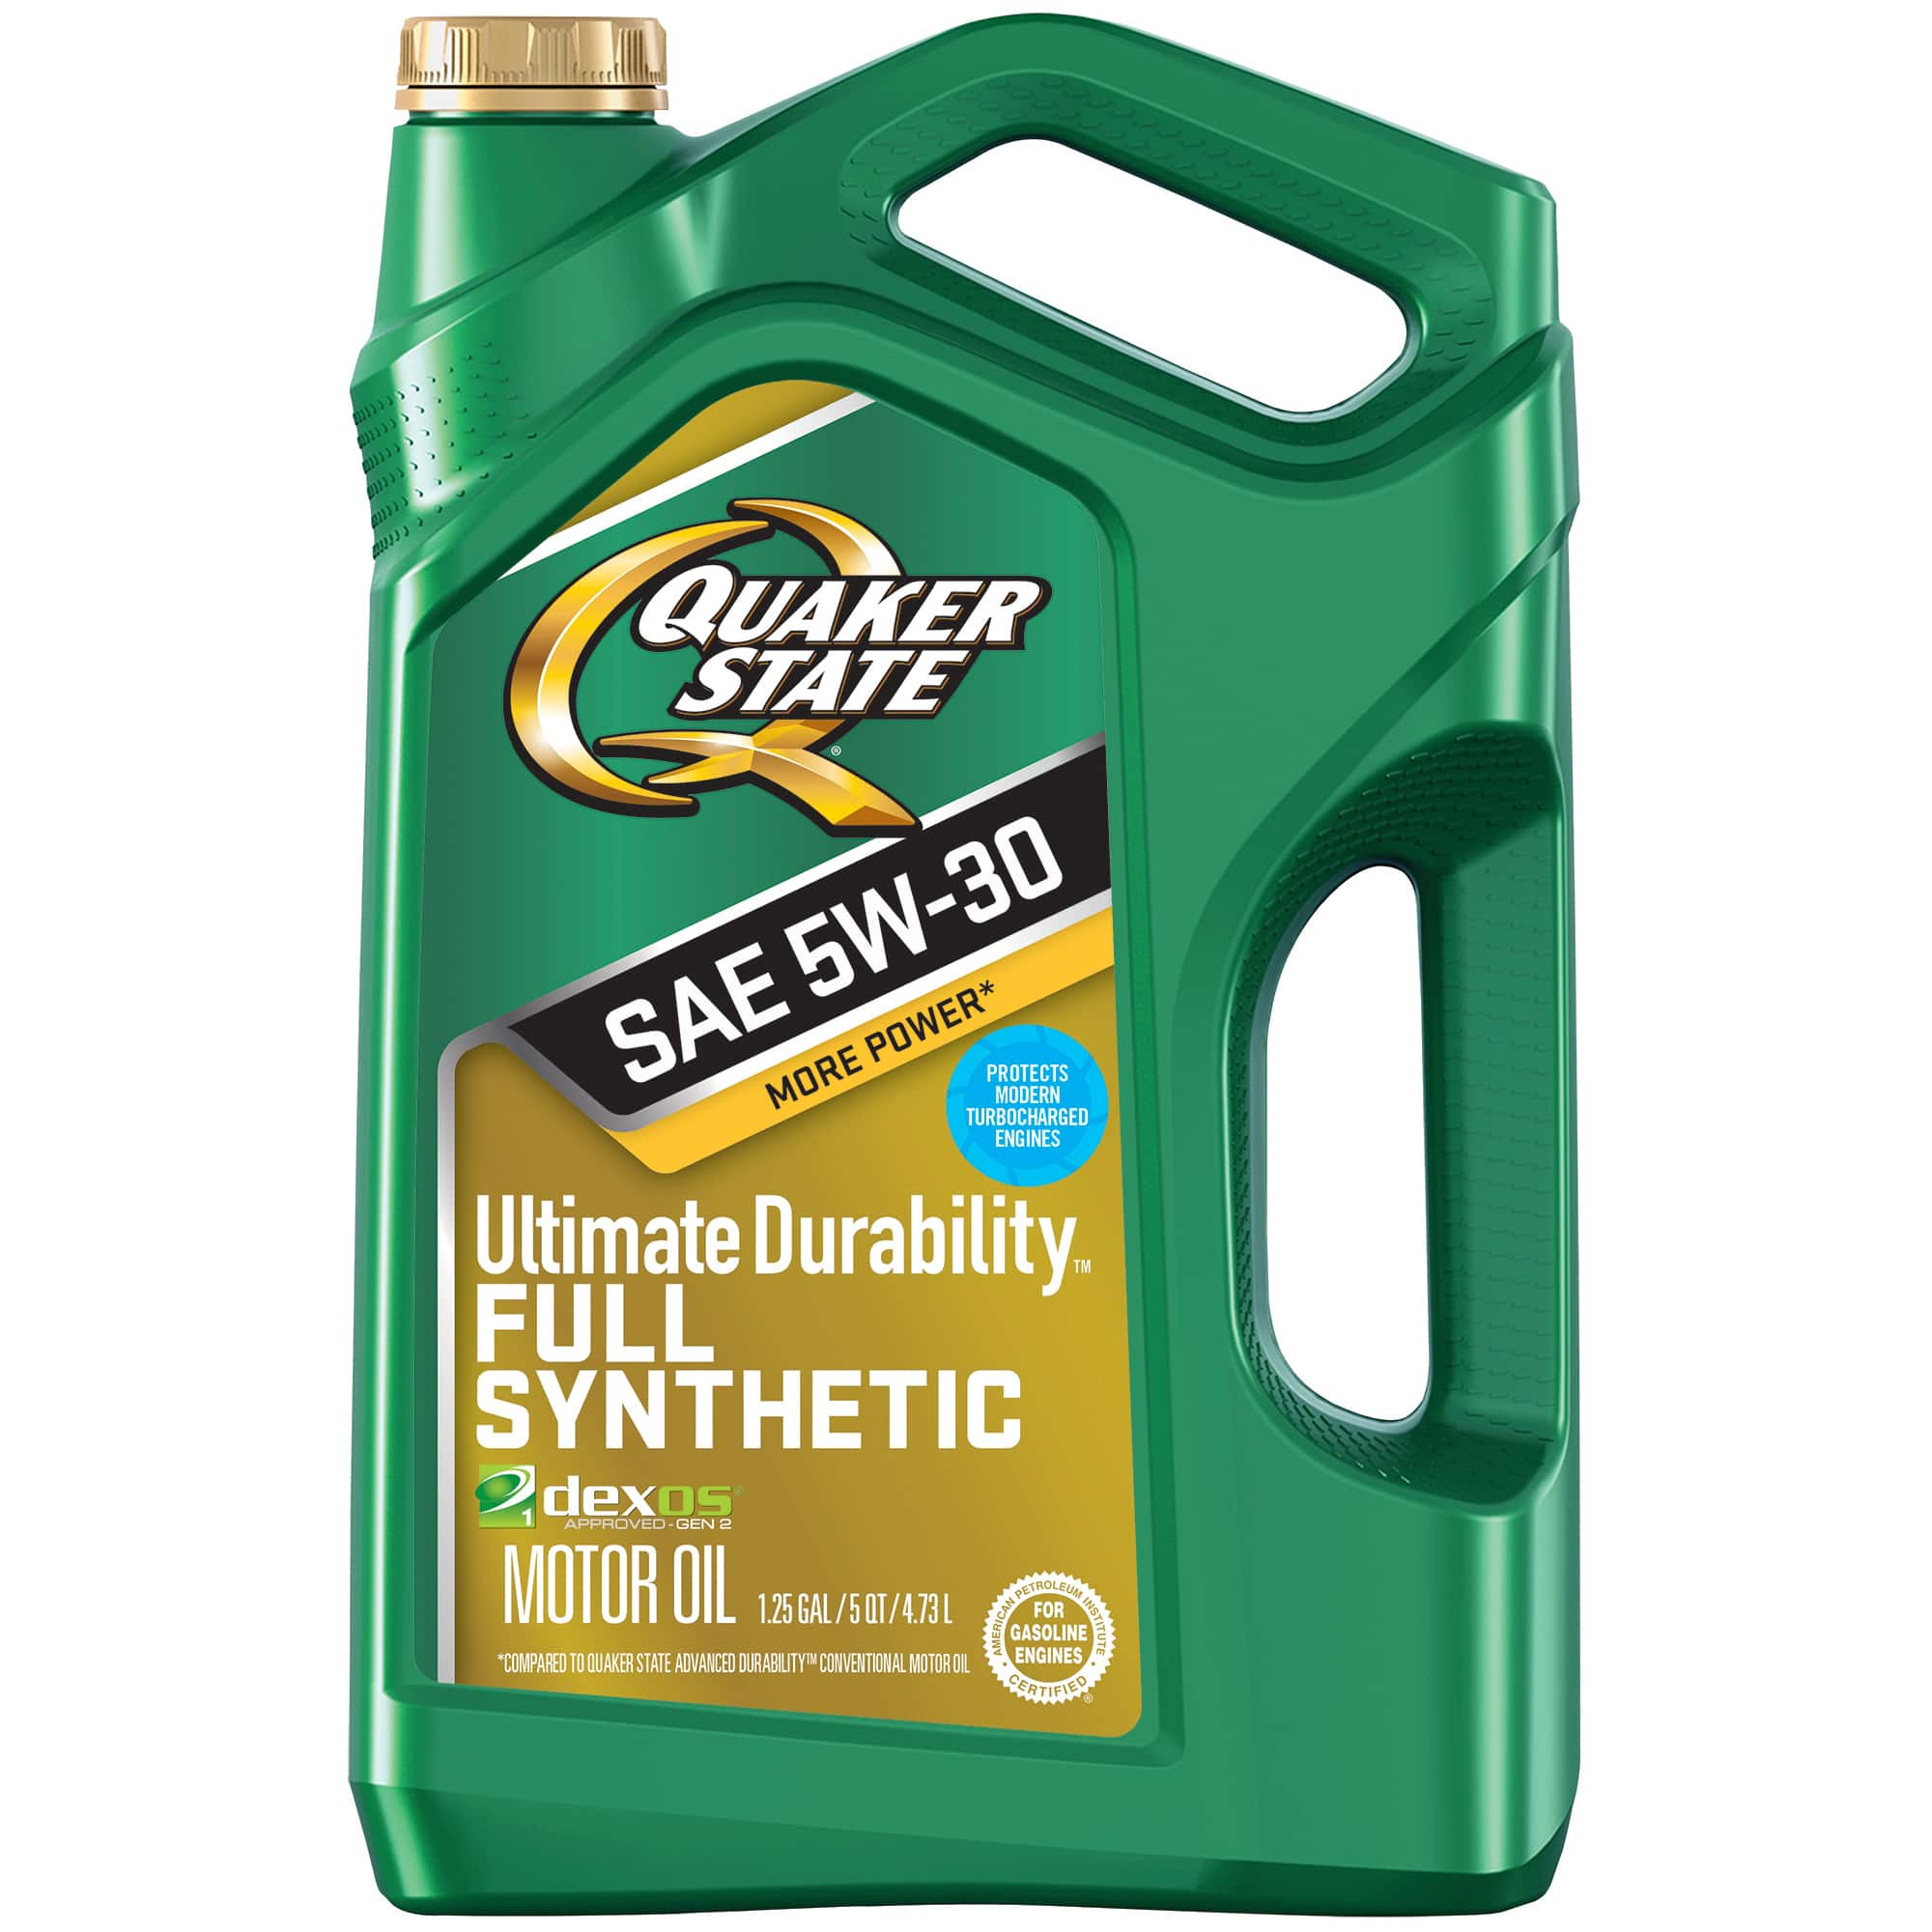 (3 Pack) Quaker State Ultimate Durability 5W-30 Dexos Full Synthetic Motor, 5 qt